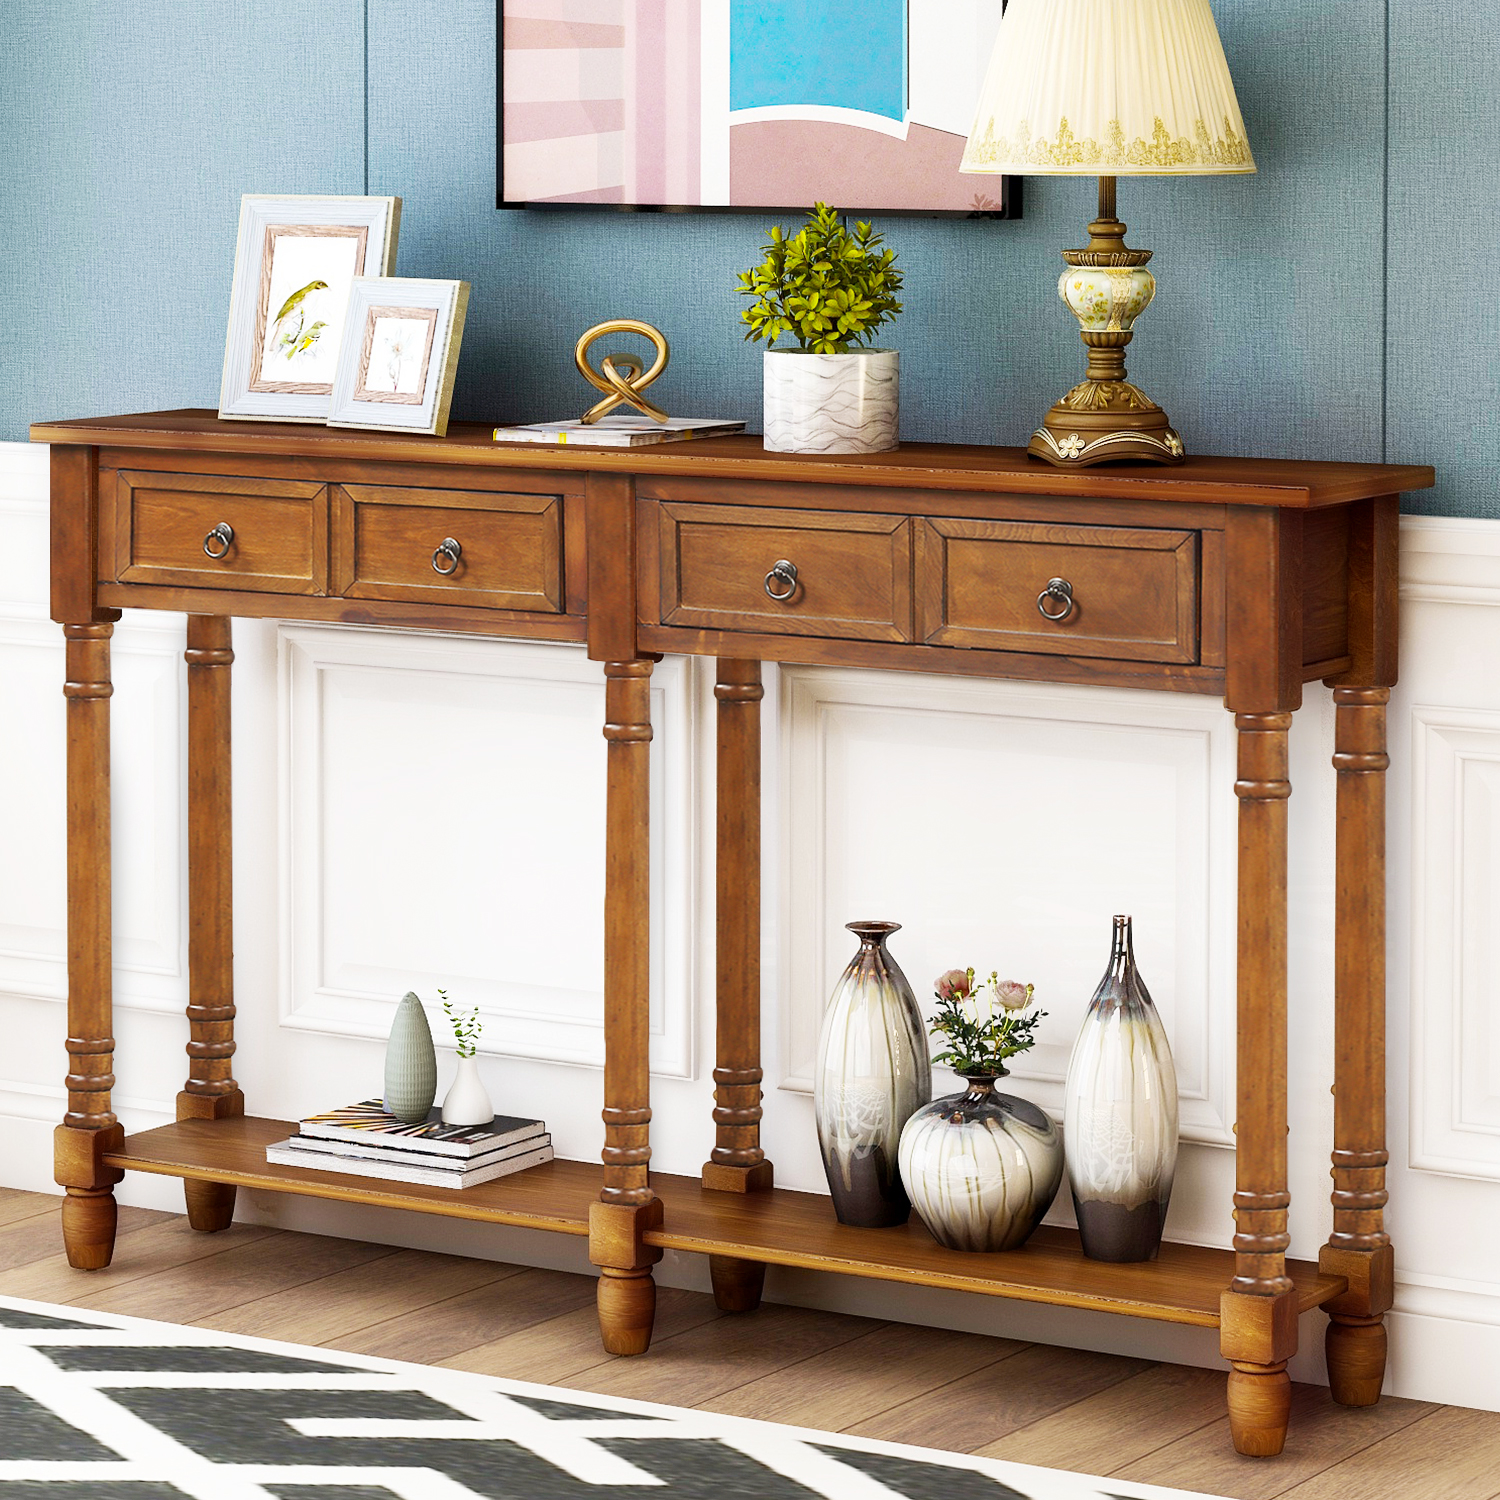 Console Table With Drawers For Entryway